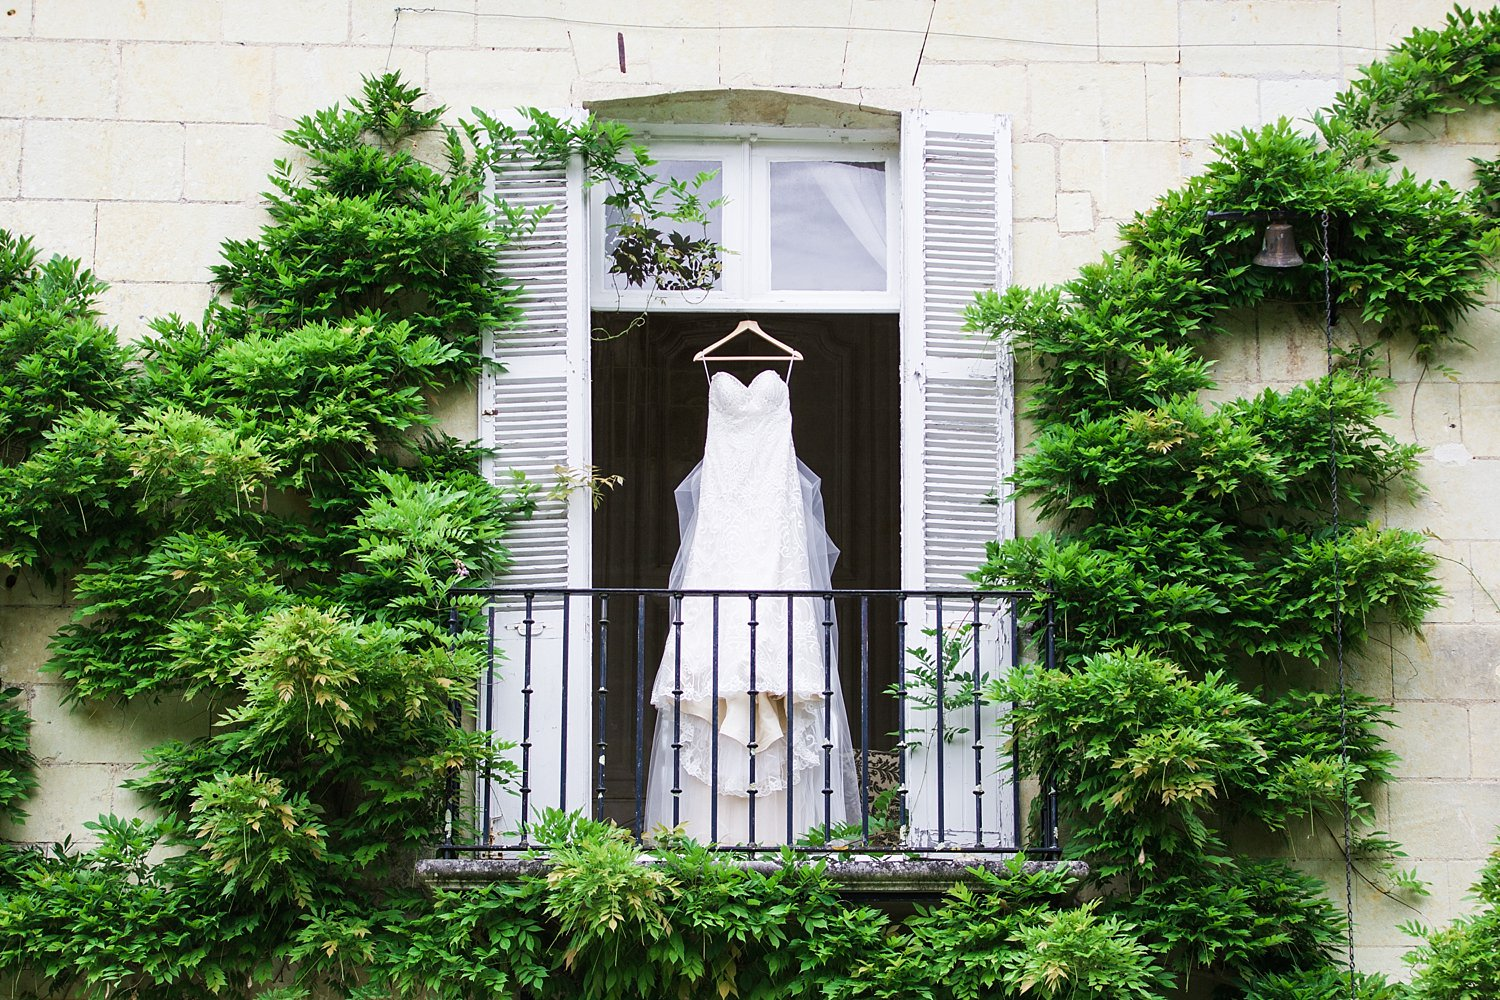 paris-france-wedding-photographer_0033.jpg